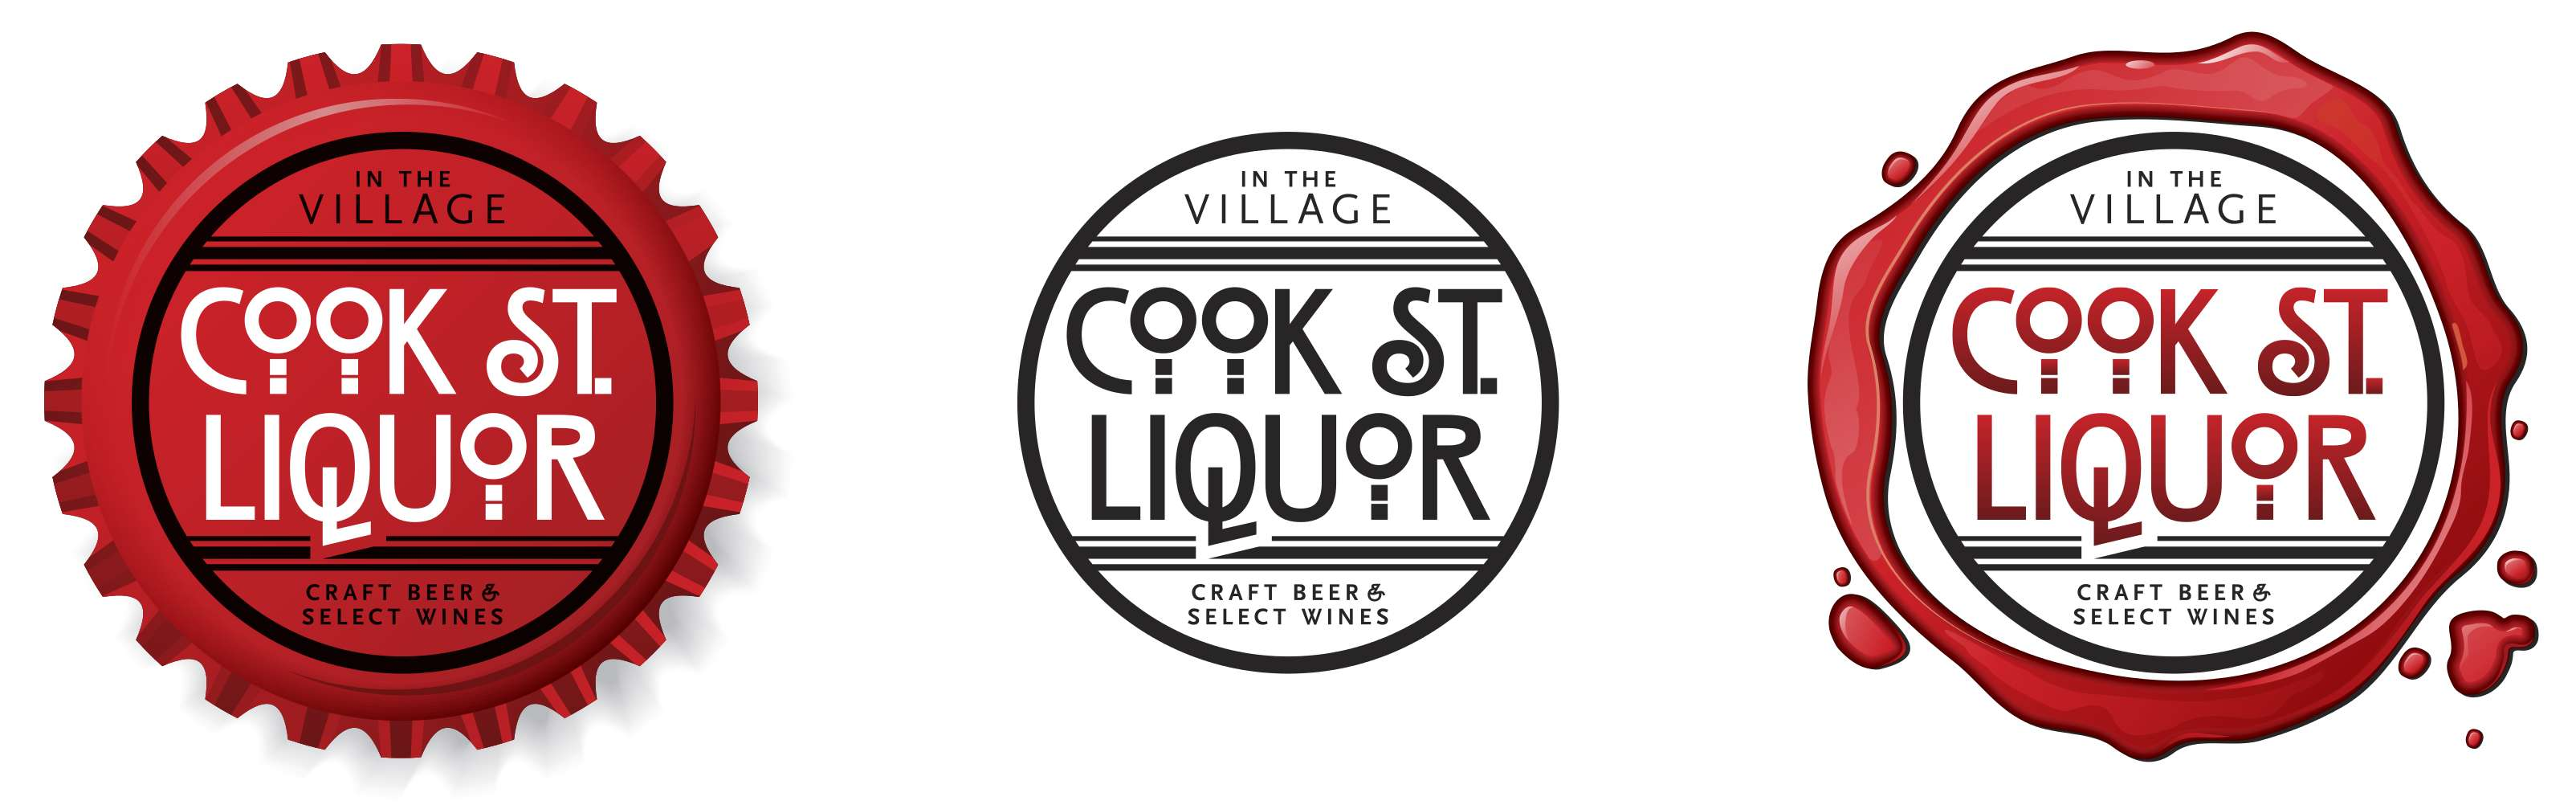 Cook Street Liquor logo family